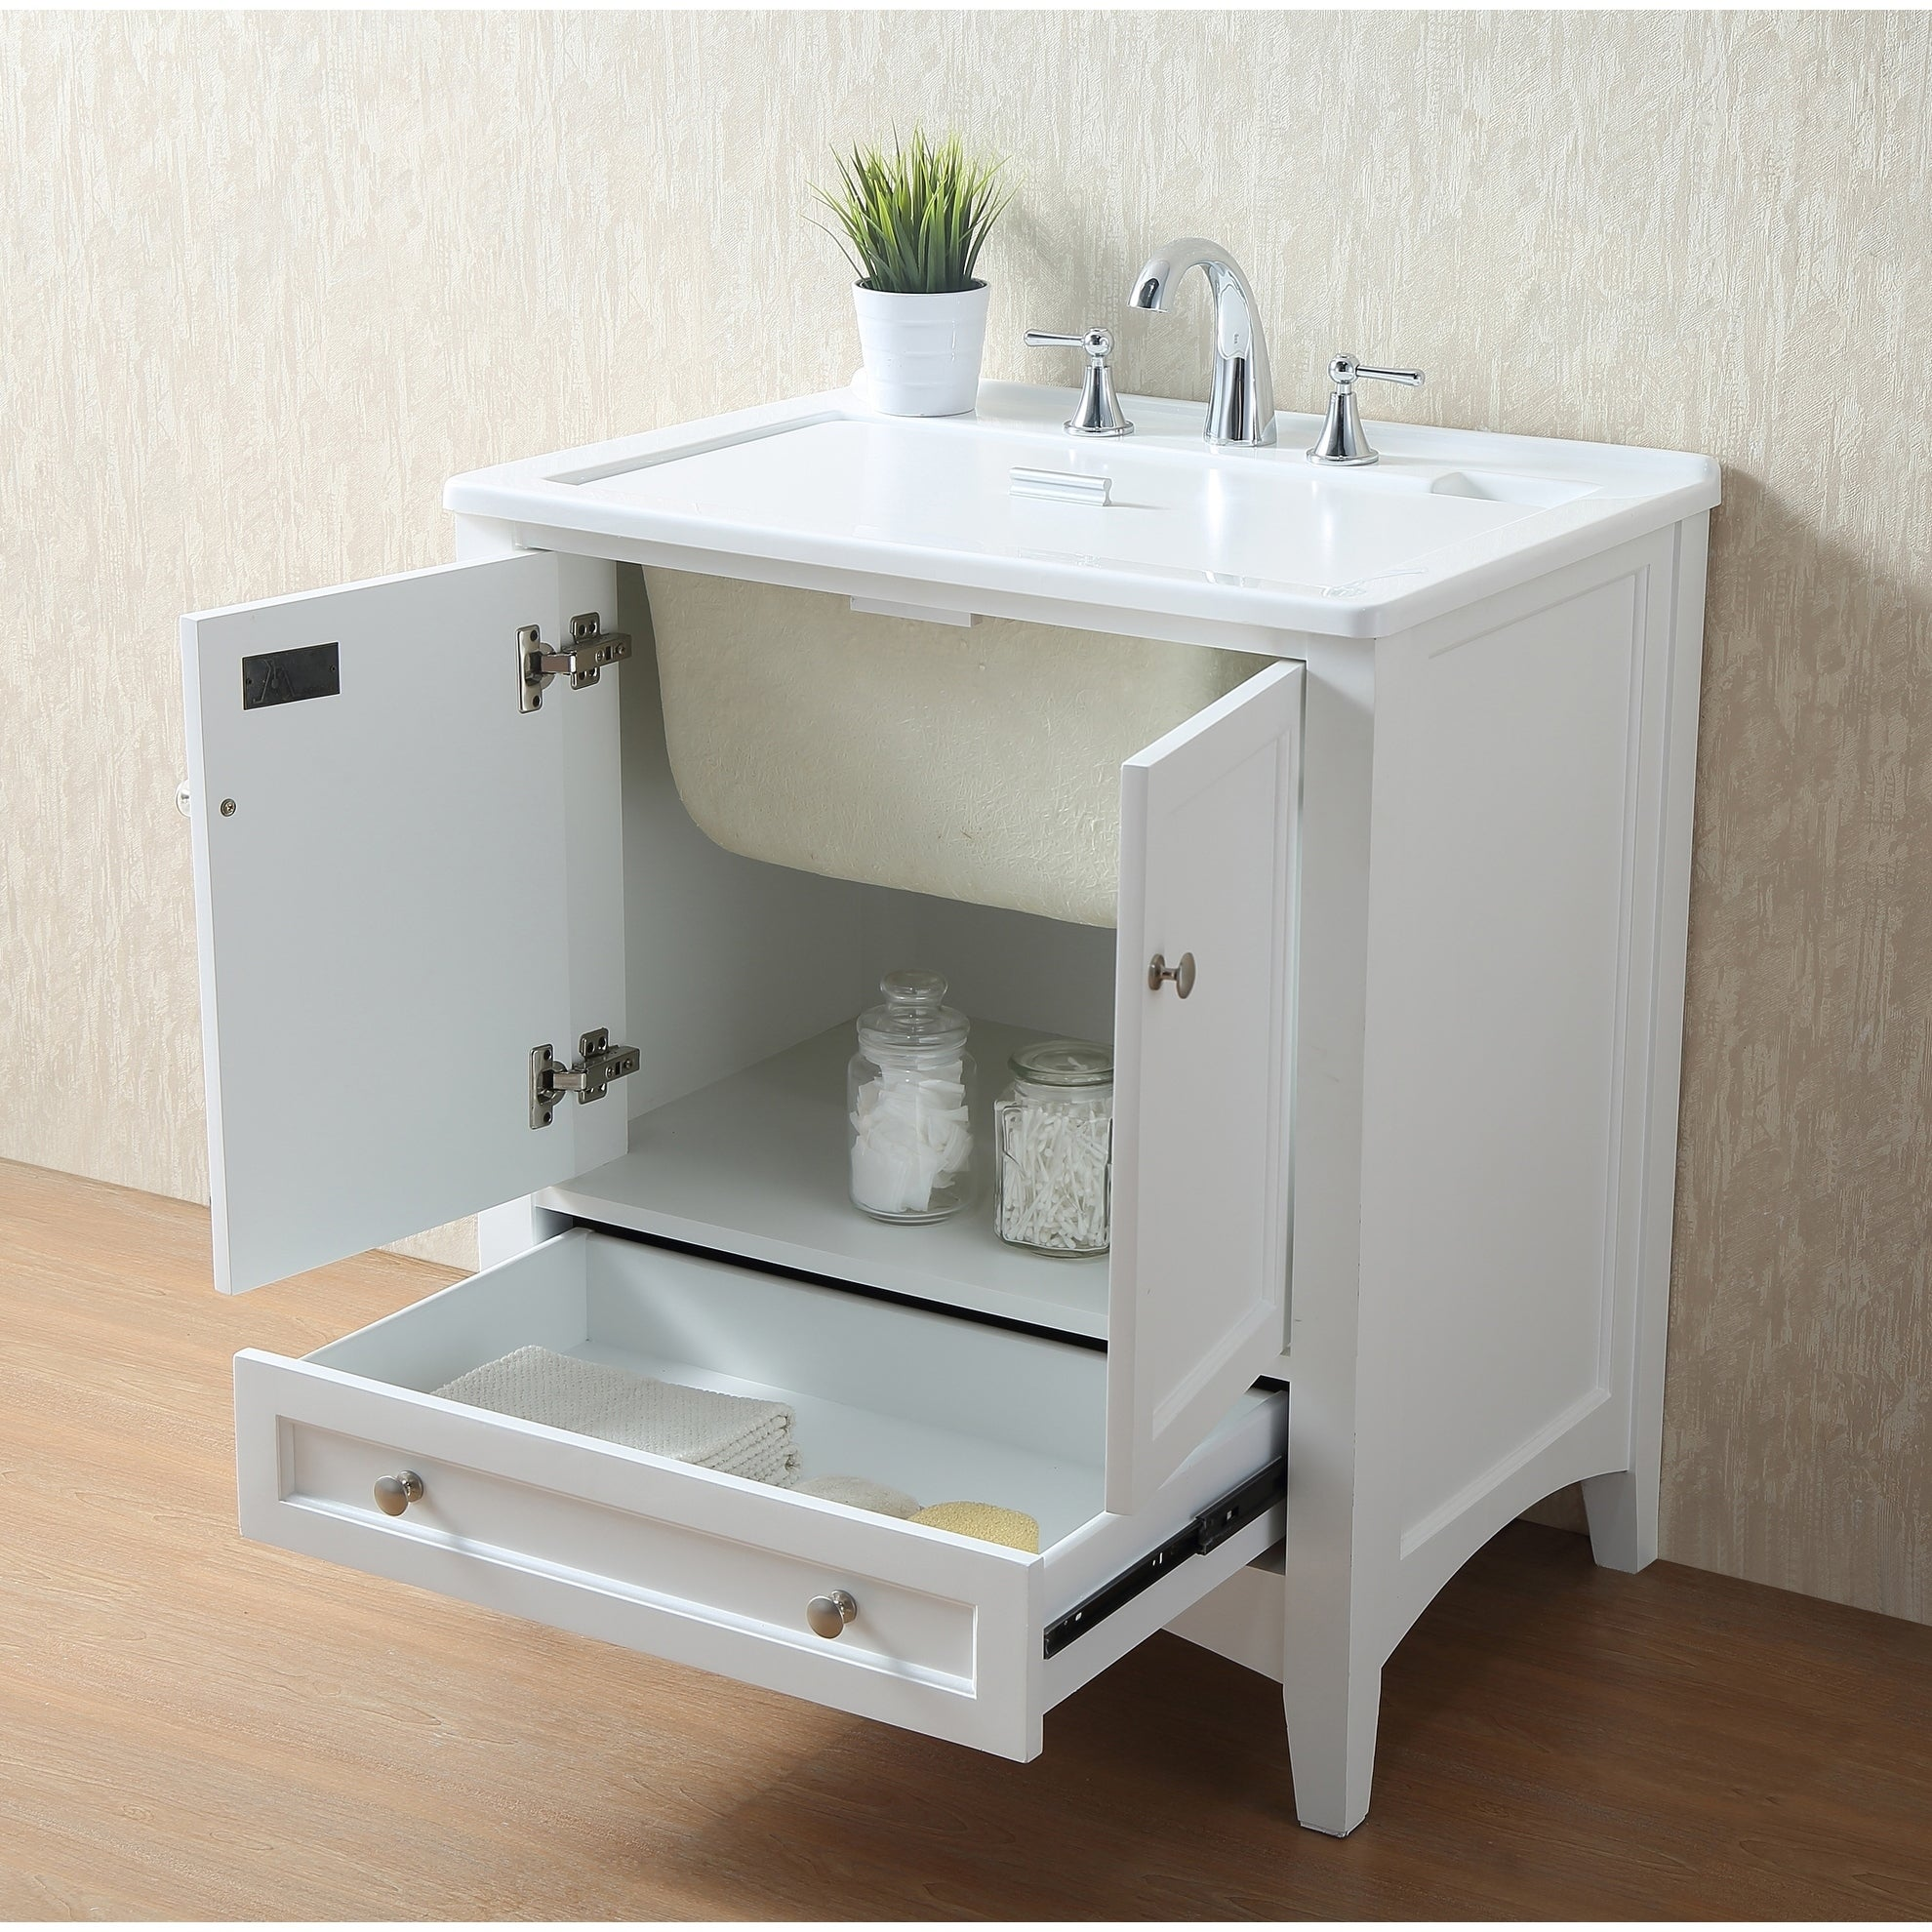 Stufurhome 30 Inch White Laundry Utility Sink Free Shipping Today 9207432